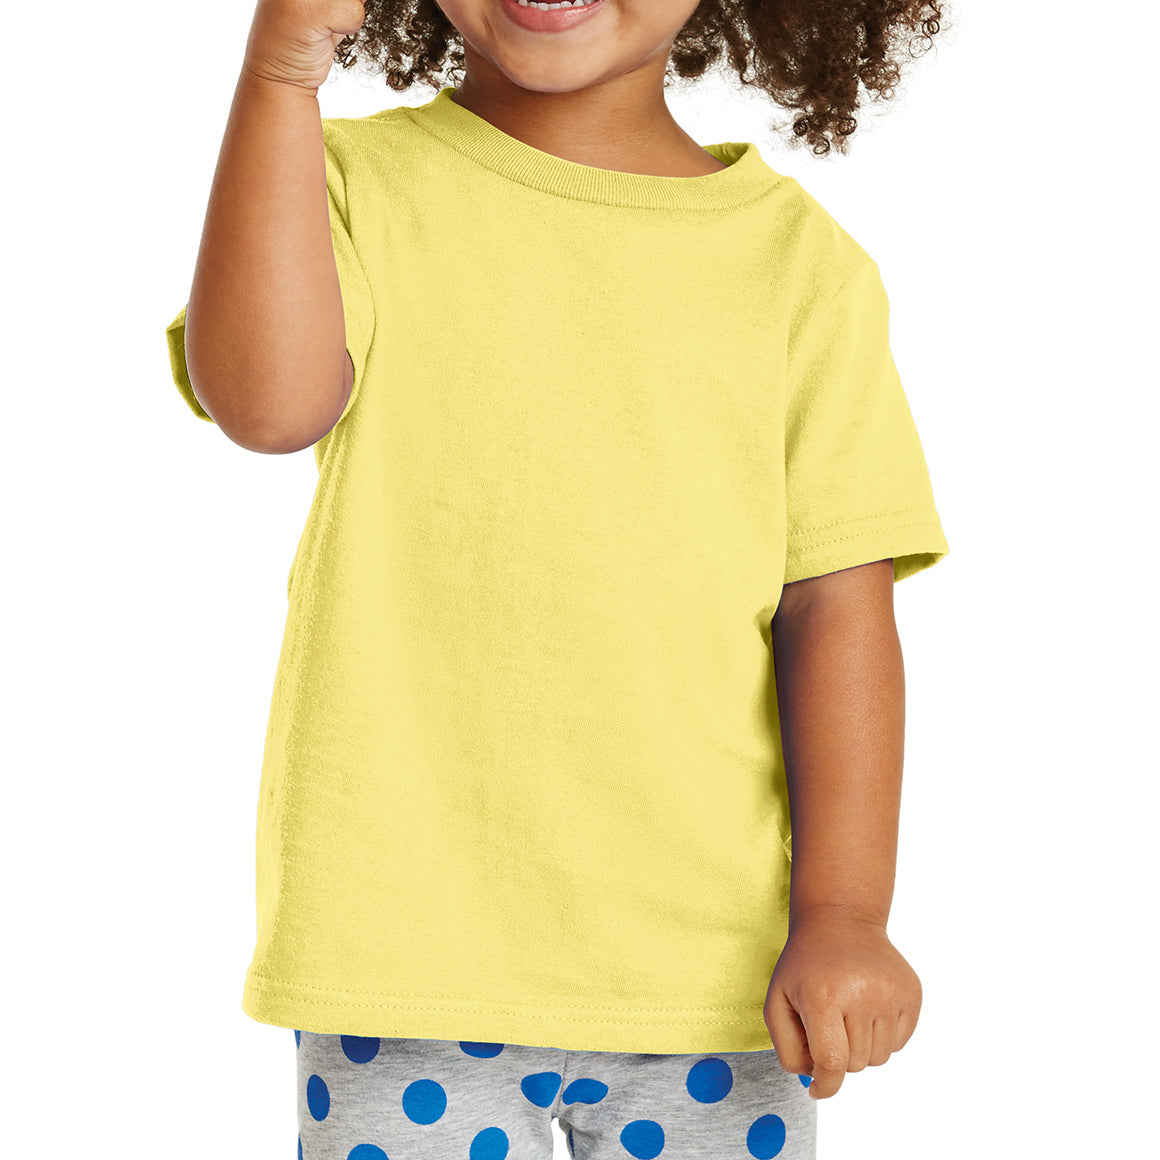 Toddler Core Cotton Tee - Yellow